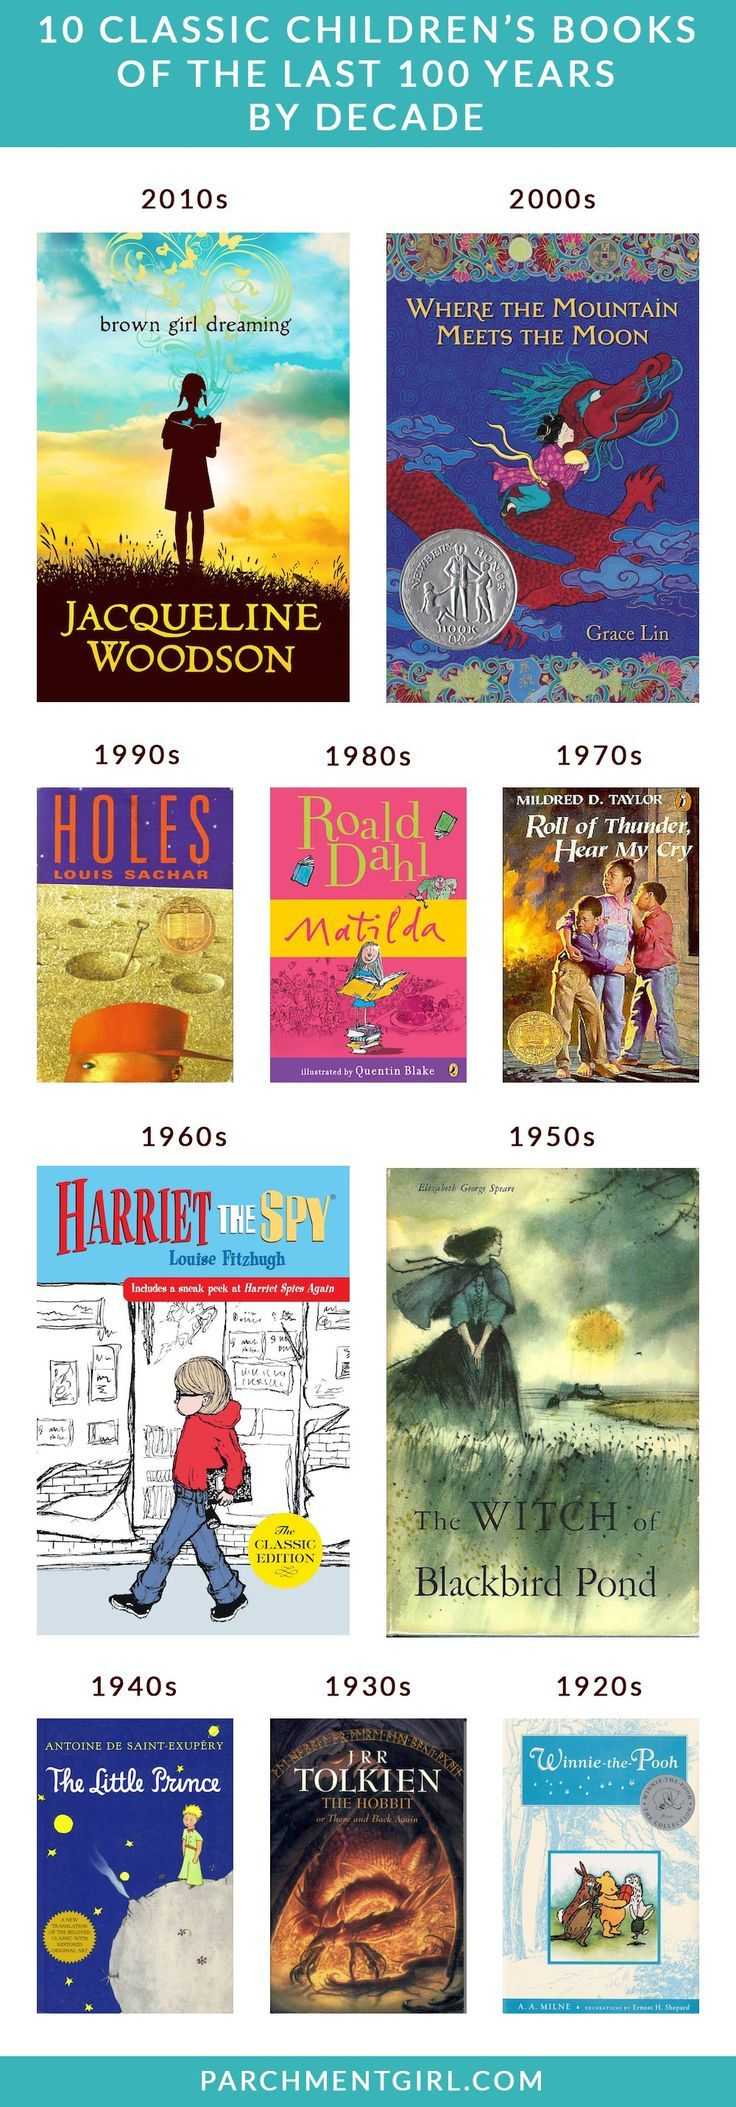 Harriet the Spy, The Little Prince, + more of the best children's books of the last 100 years